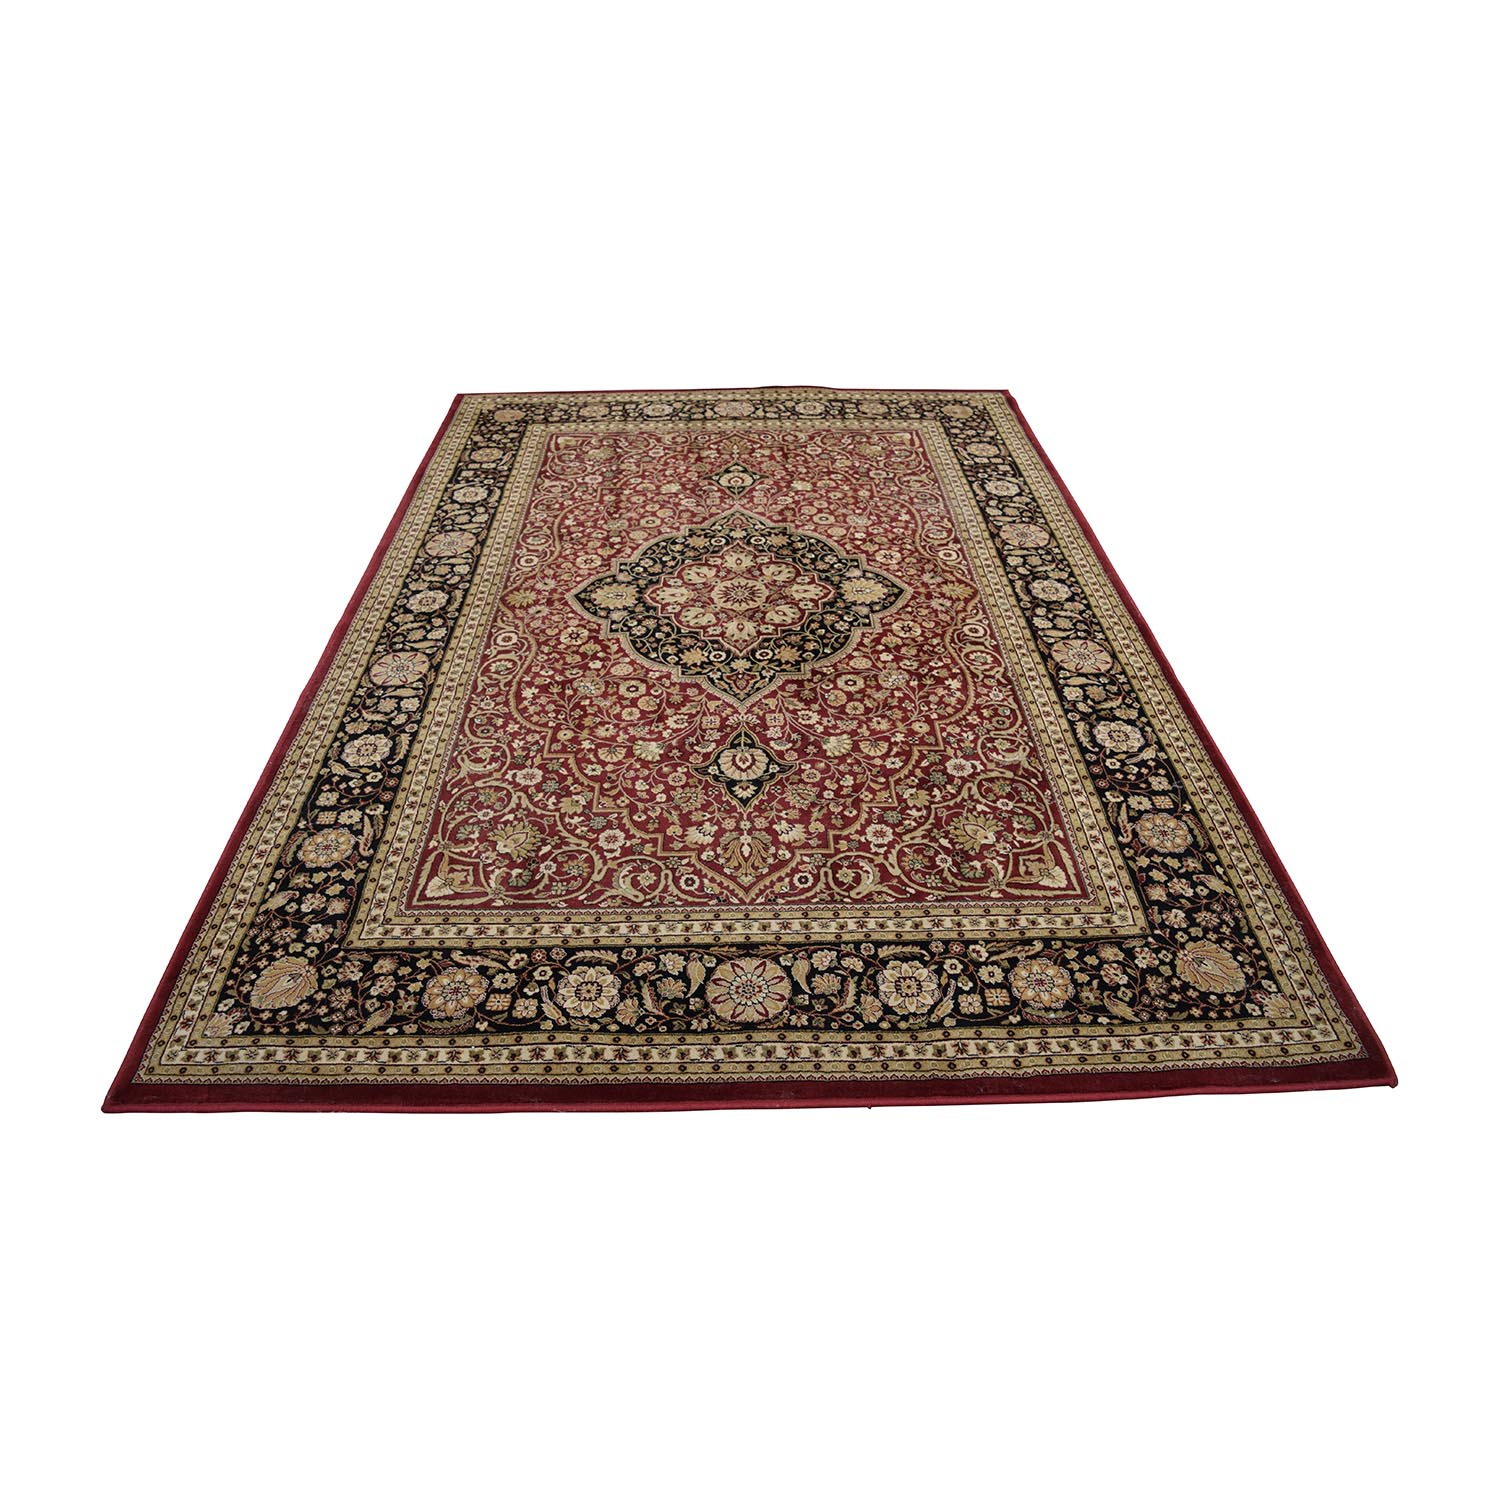 Oriental Red Black and Beige Rug for sale